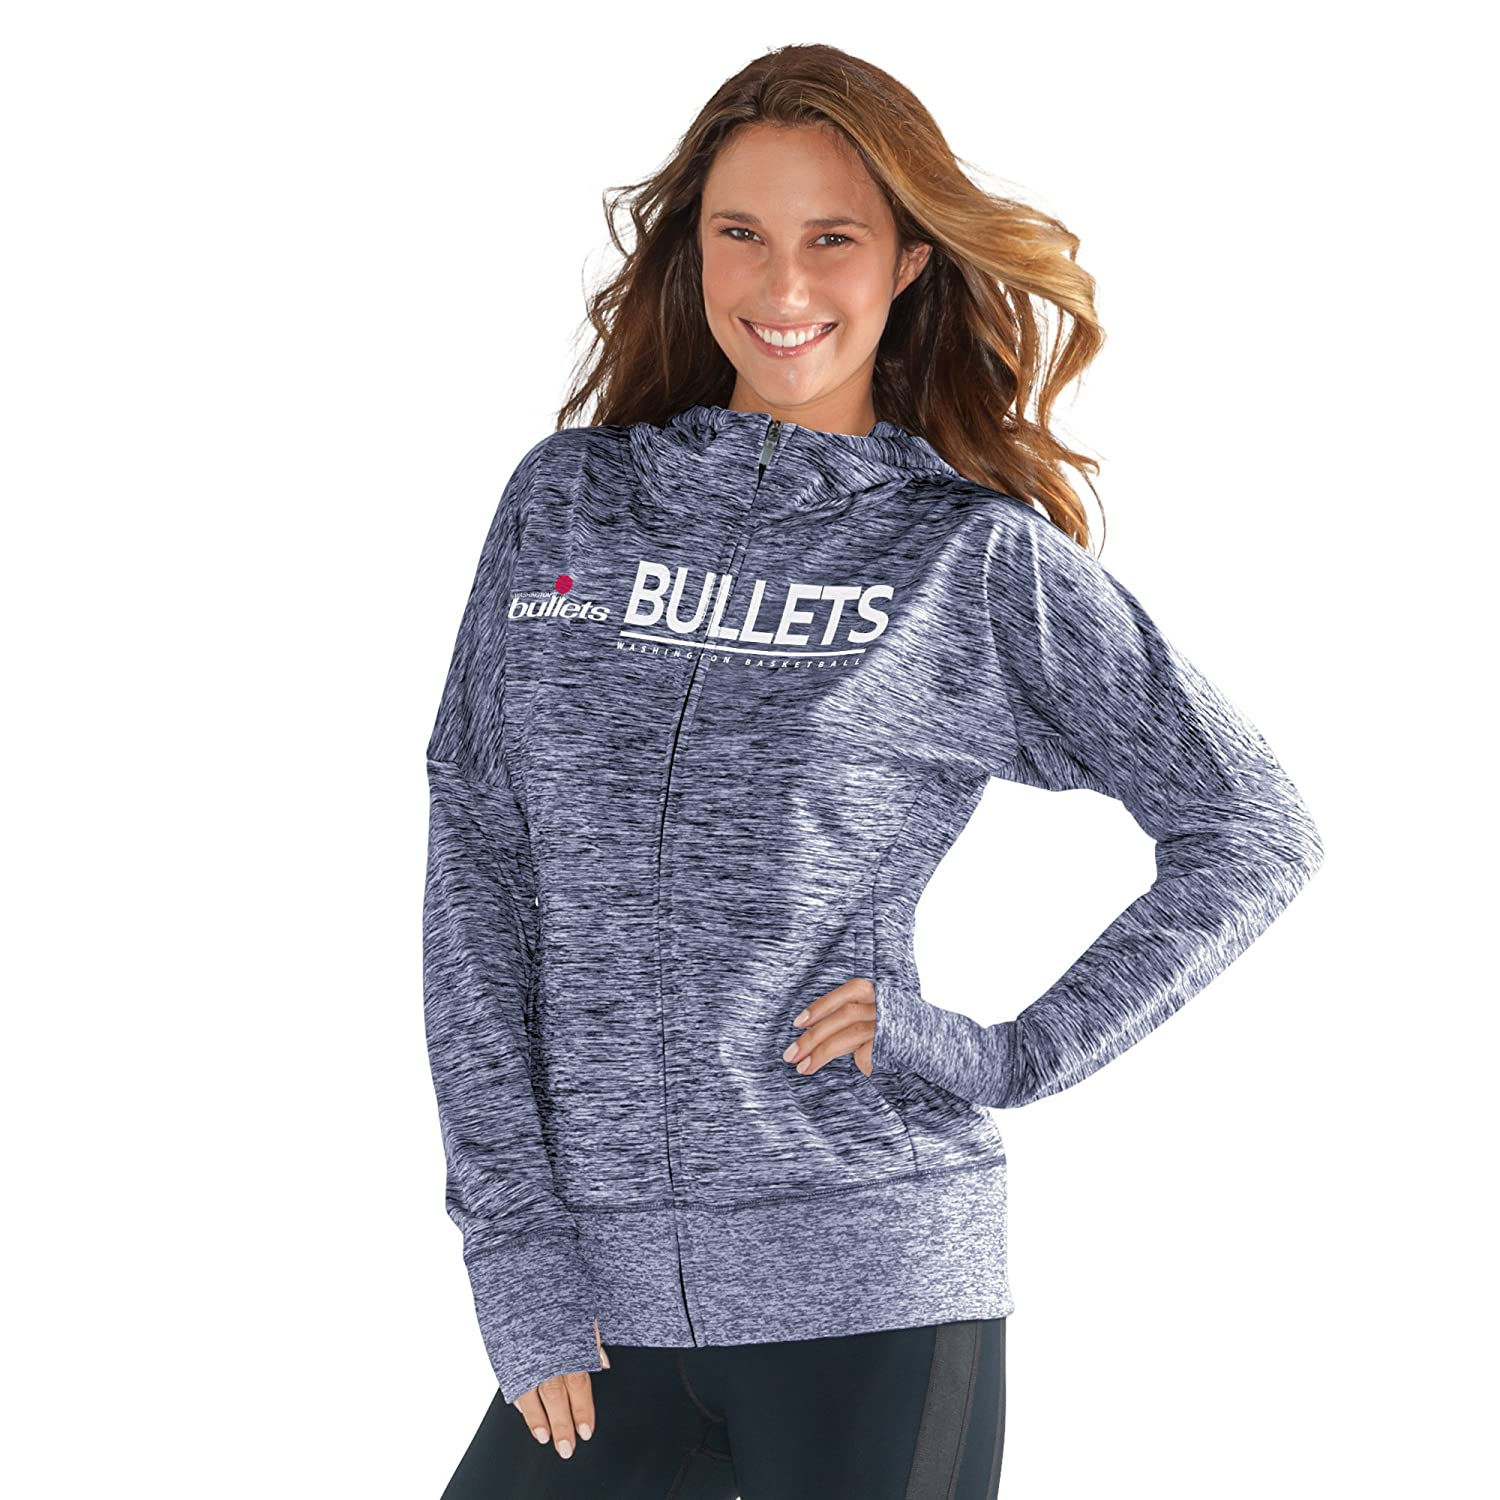 GIII For Her NBA Washington Bullets Womens Receiver Hoody Navy X-Large